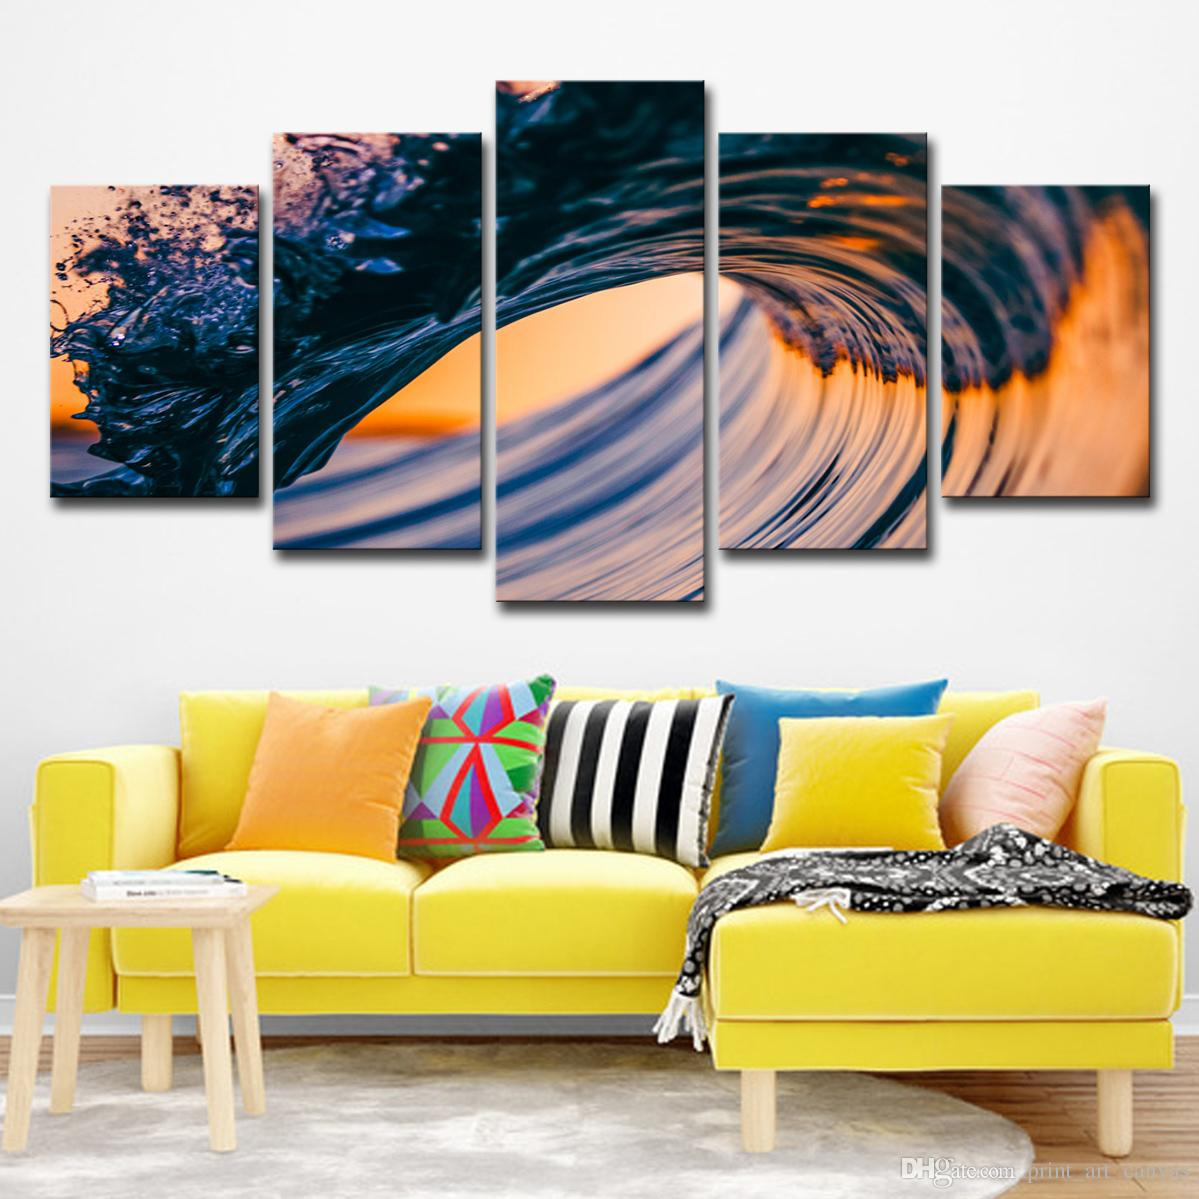 Lienzo Pinturas al óleo Arte de la pared Decoración para el hogar Sala de estar 5 Piezas Sunset Seascape Fotos HD Prints Mar Olas Playa Posters